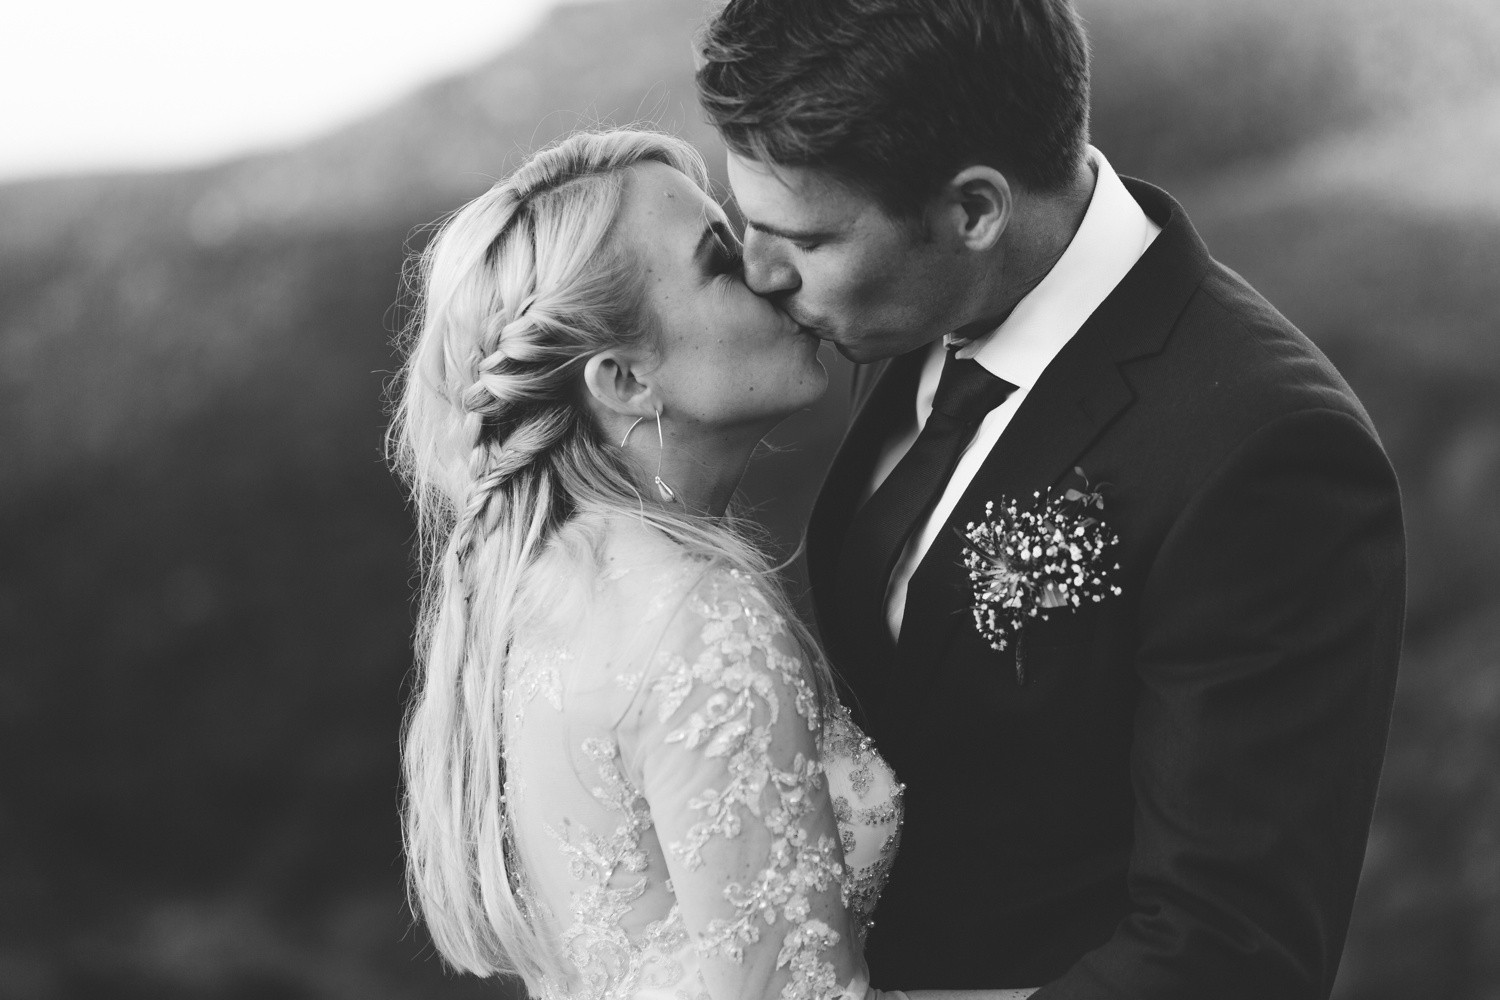 cathryn_warwick_wearecharlieray_hopewell_conservation_eastern_cape_wedding_0104.jpg